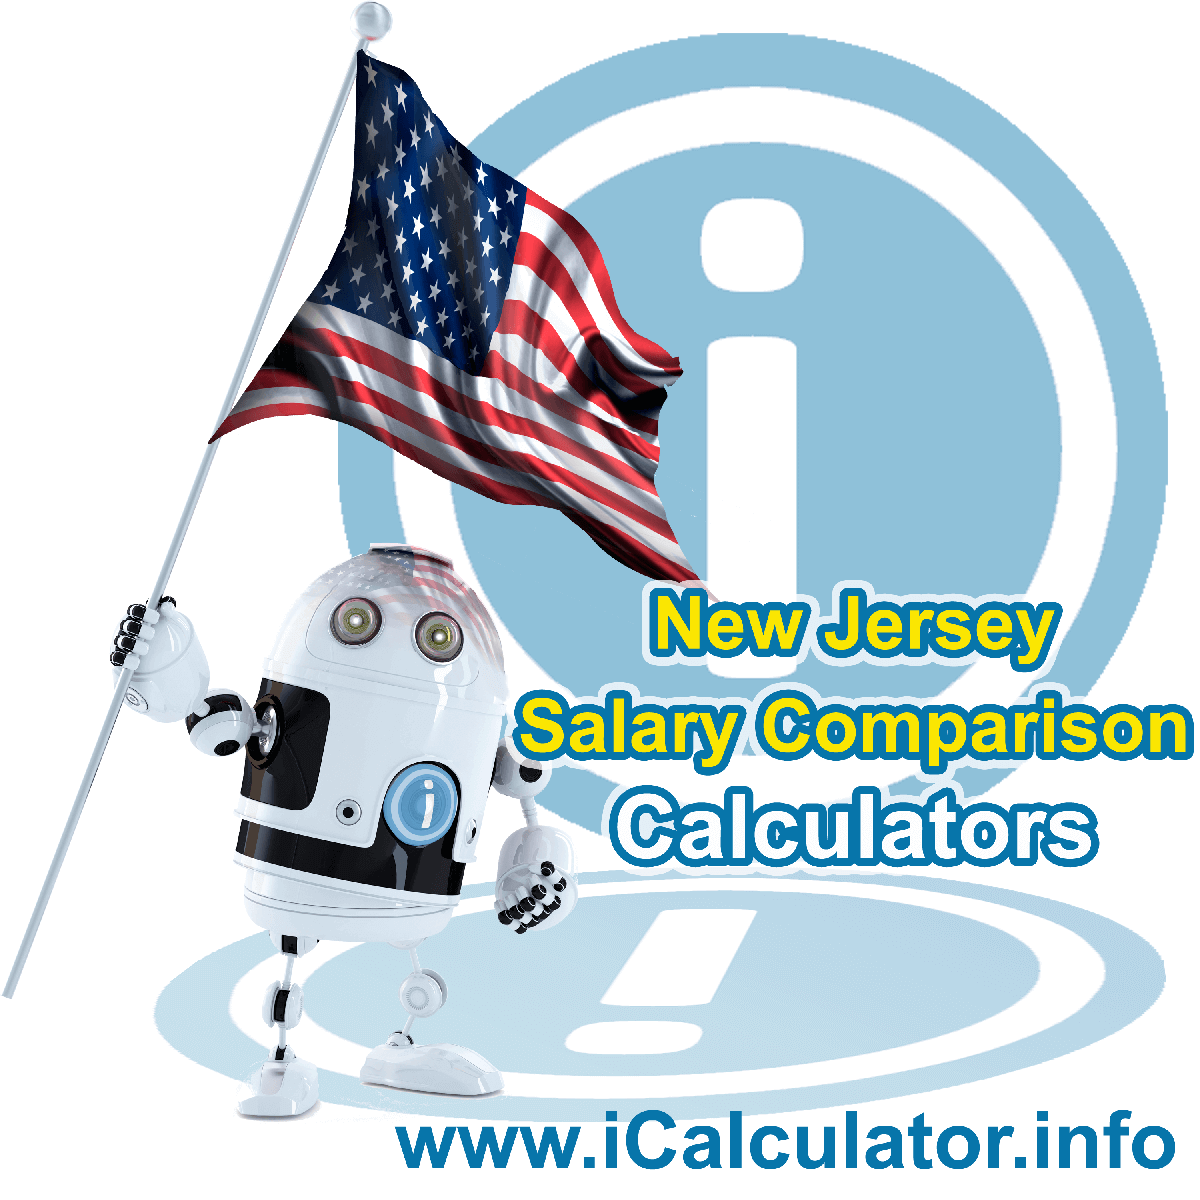 New Jersey Salary Comparison Calculator 2021 | iCalculator™ | The New Jersey Salary Comparison Calculator allows you to quickly calculate and compare upto 6 salaries in New Jersey or between other states for the 2021 tax year and historical tax years. Its an excellent tool for jobseekers, pay raise comparison and comparison of salaries between different US States